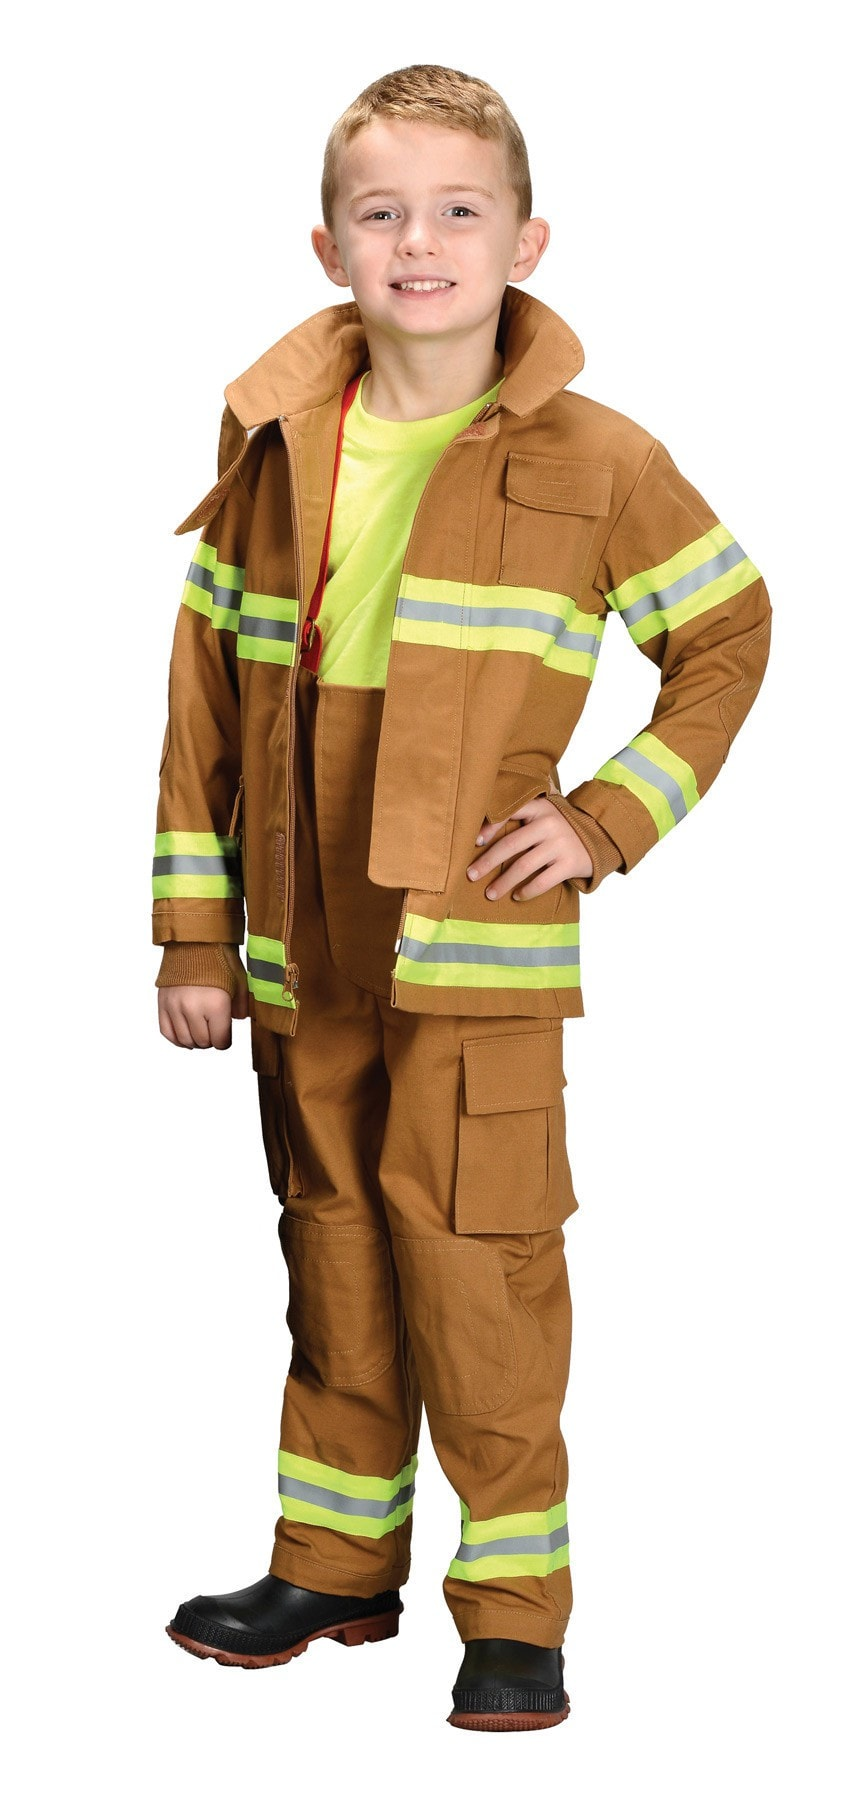 Morris Fire Fighter Child Tan Lg 8-10 - MaxWigs